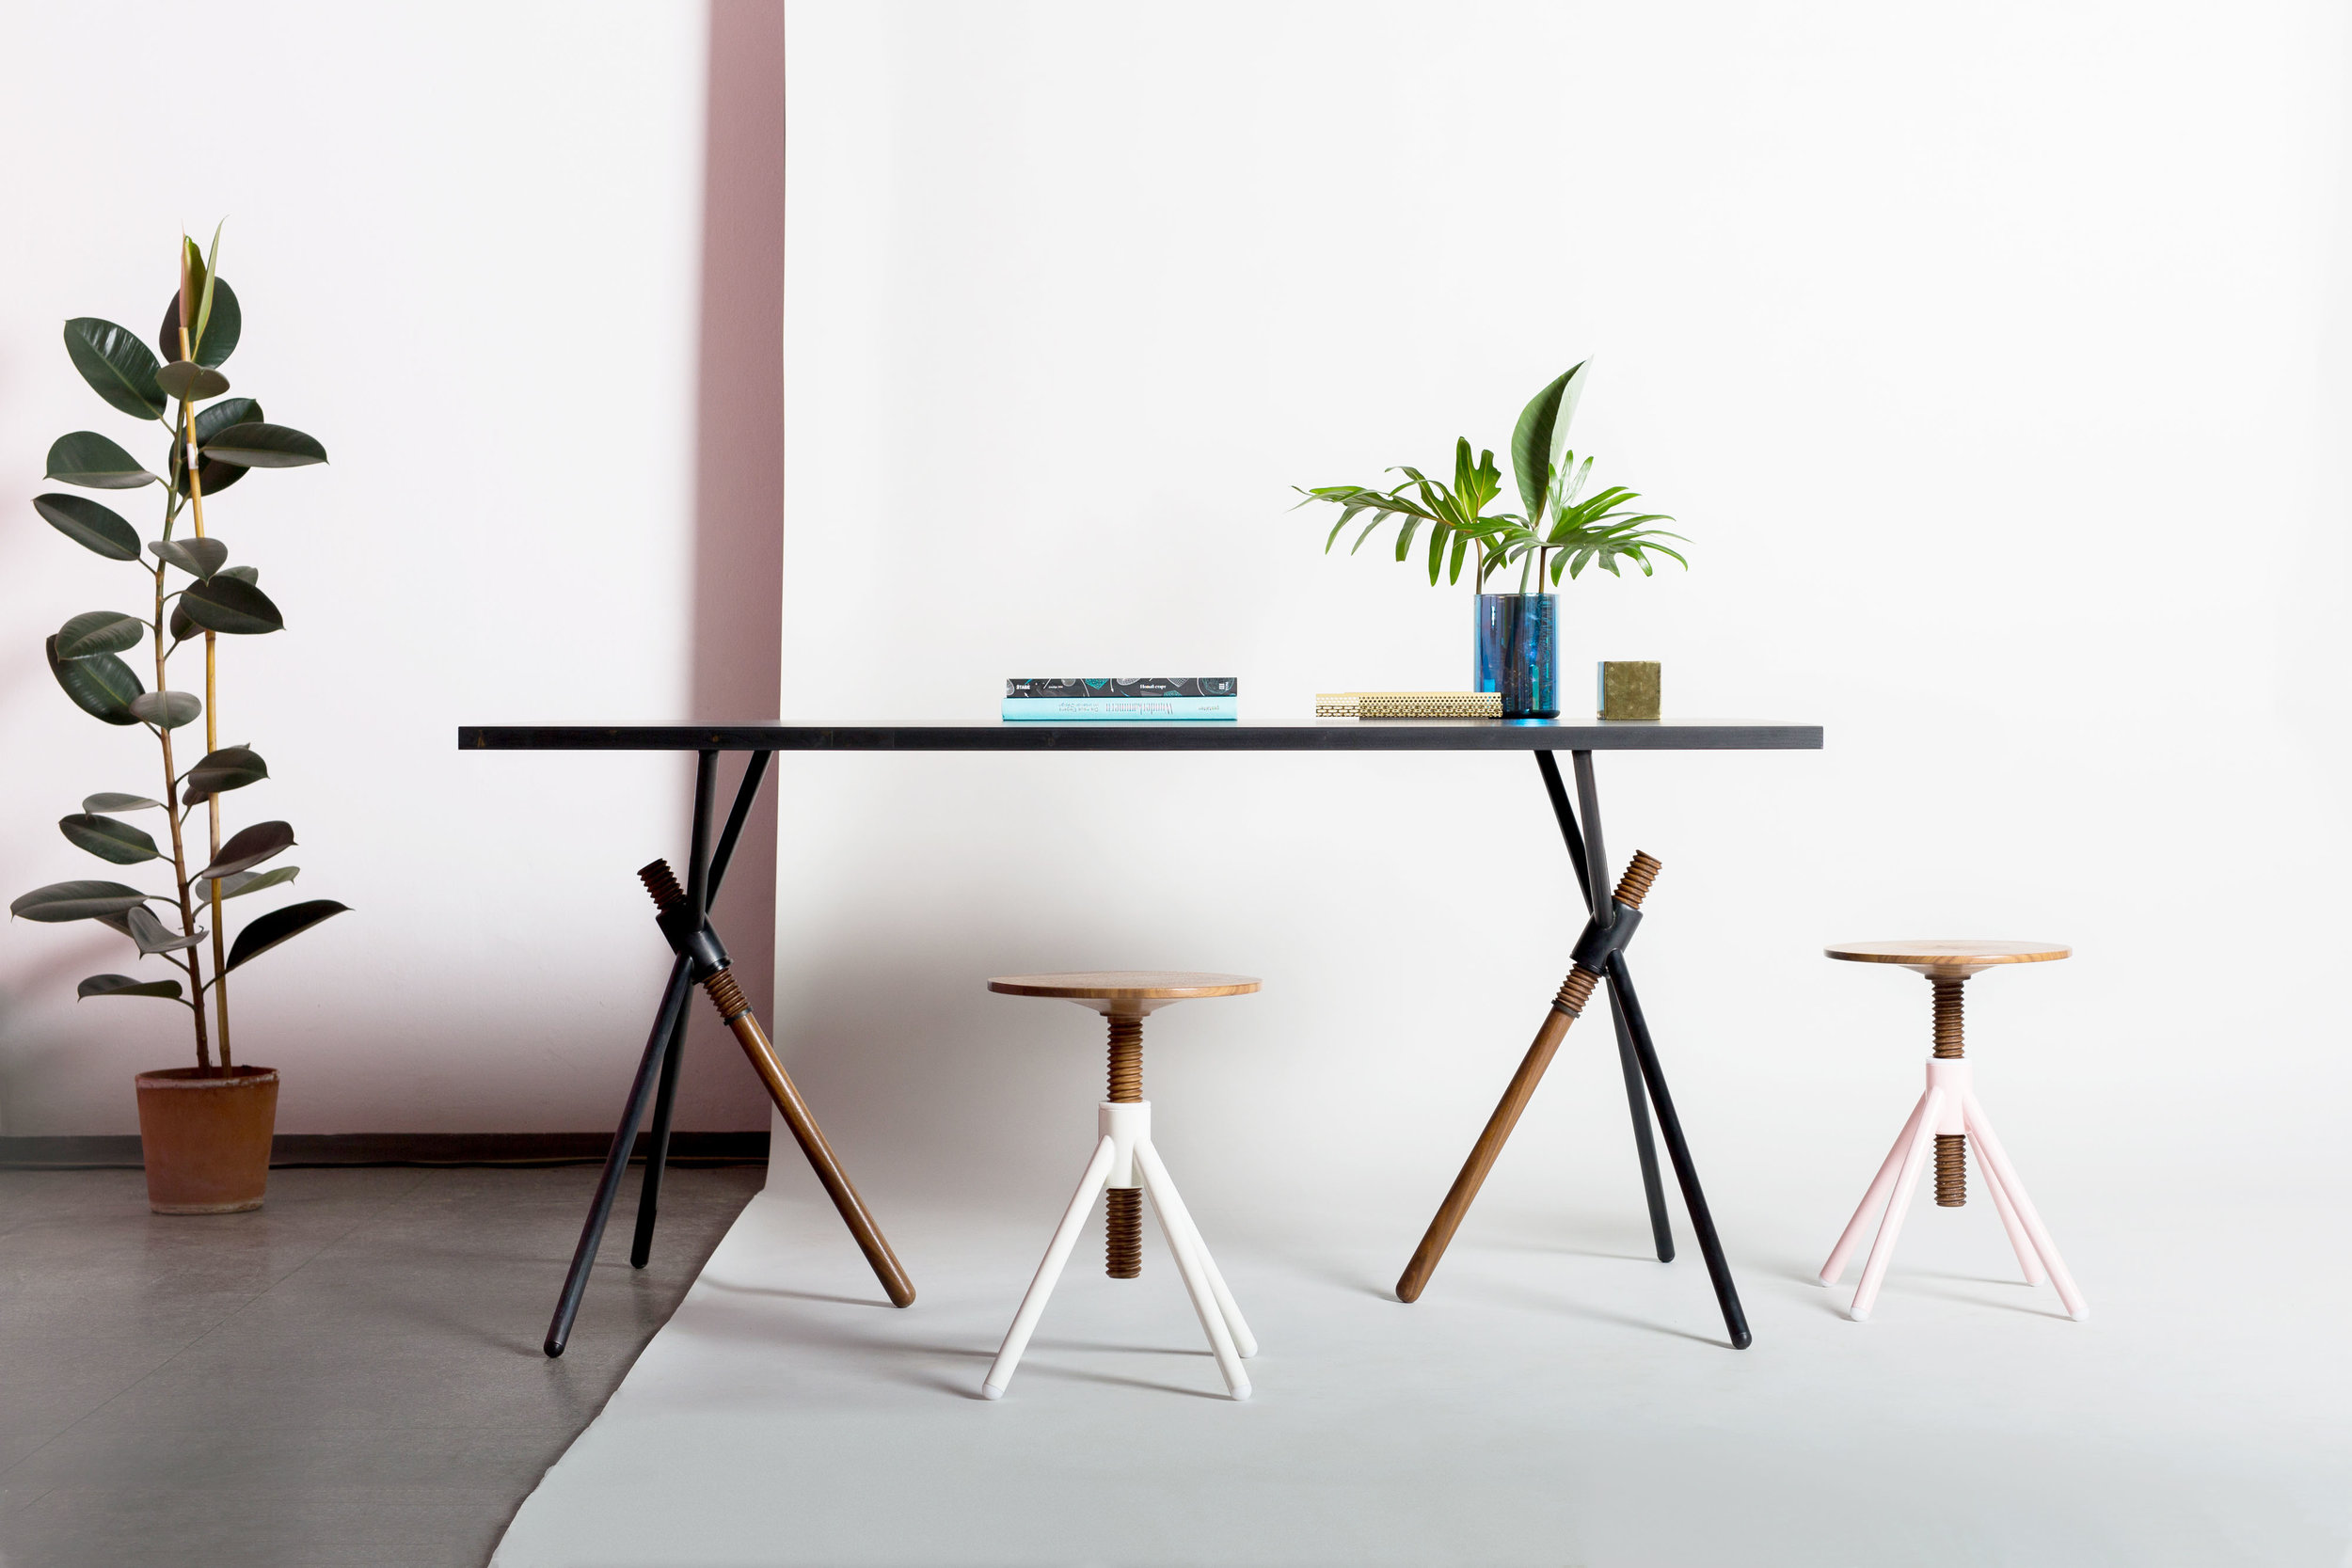 01_thread-family-table_furniture-design_coordination-berlin.jpg